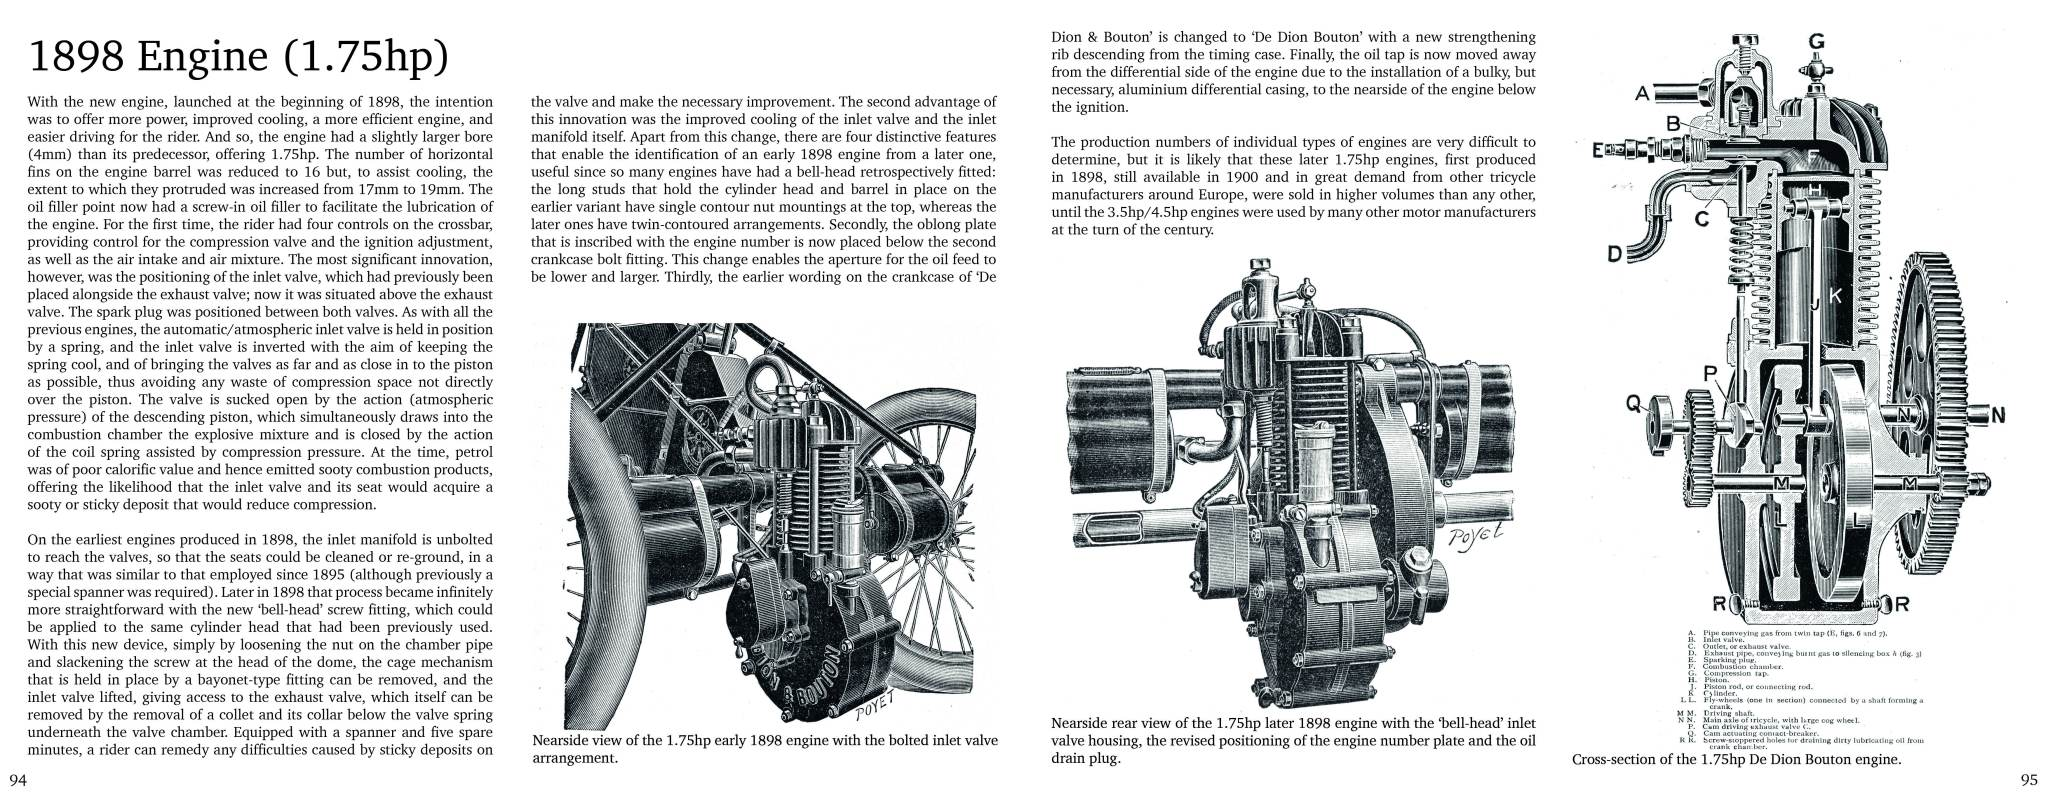 Sample Page | 1898 Engine | The Tricycle Book, Part One, 1895-1902